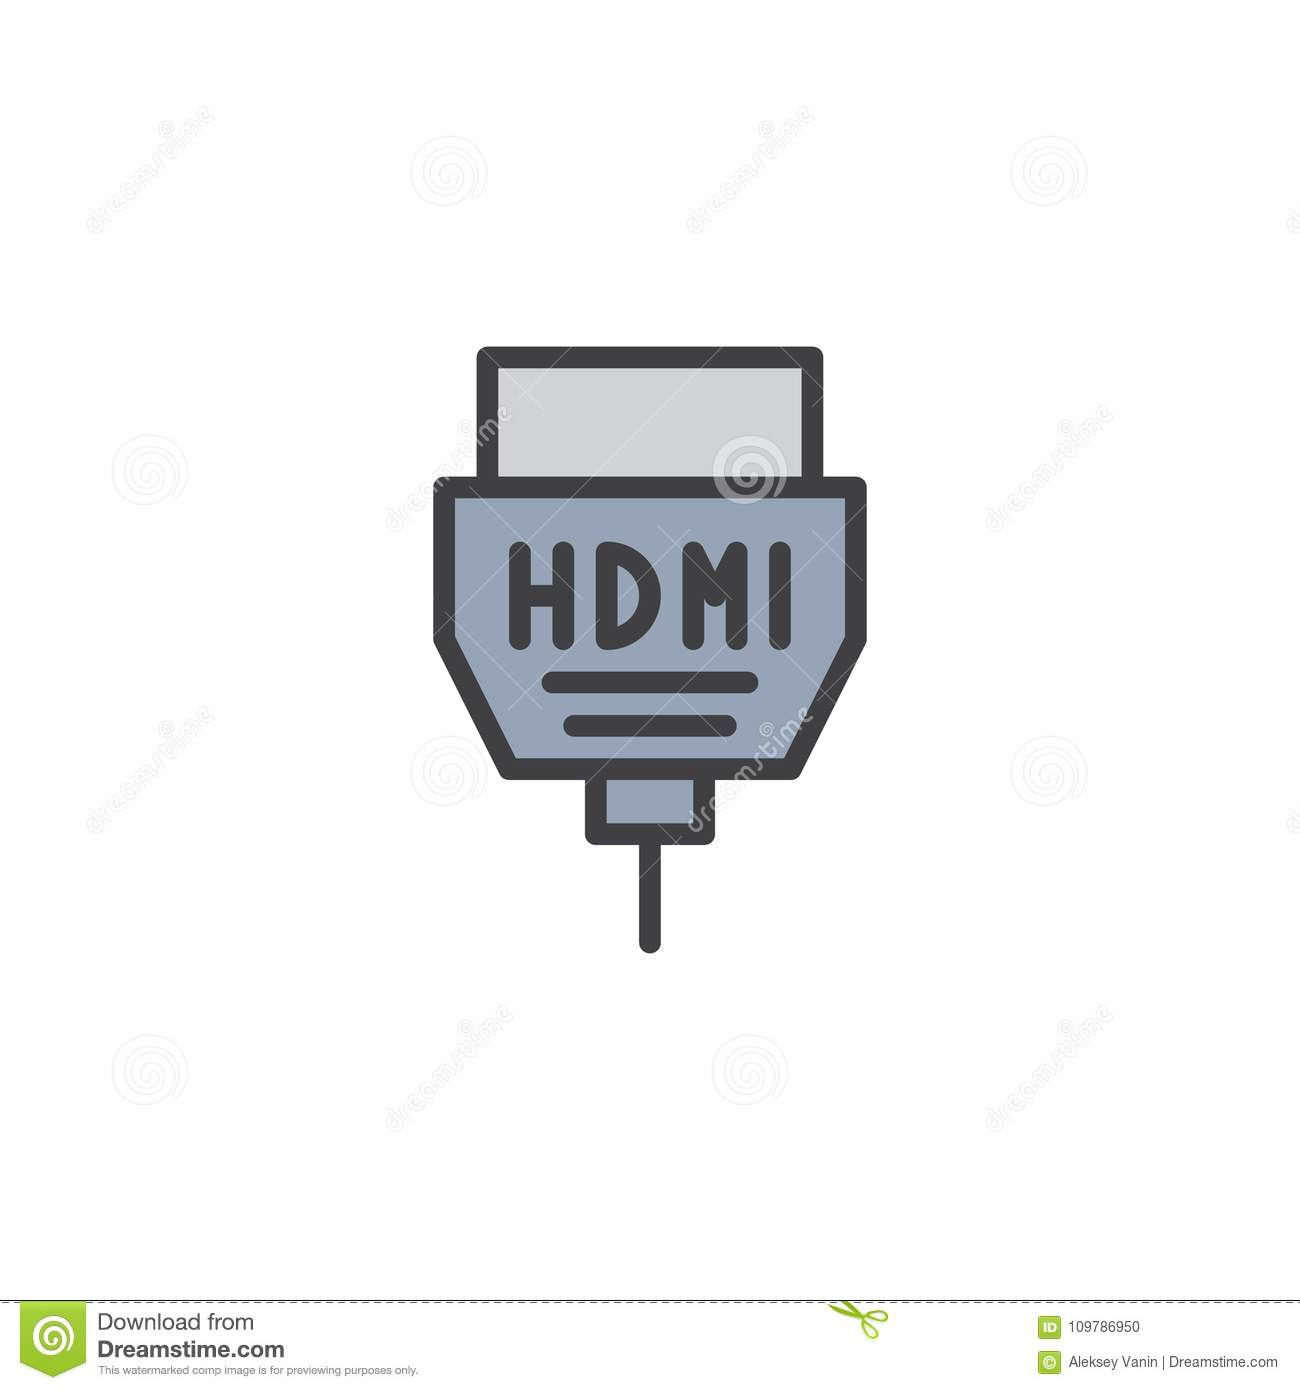 Hdmi Cable Filled Outline Icon Stock Vector Illustration Of